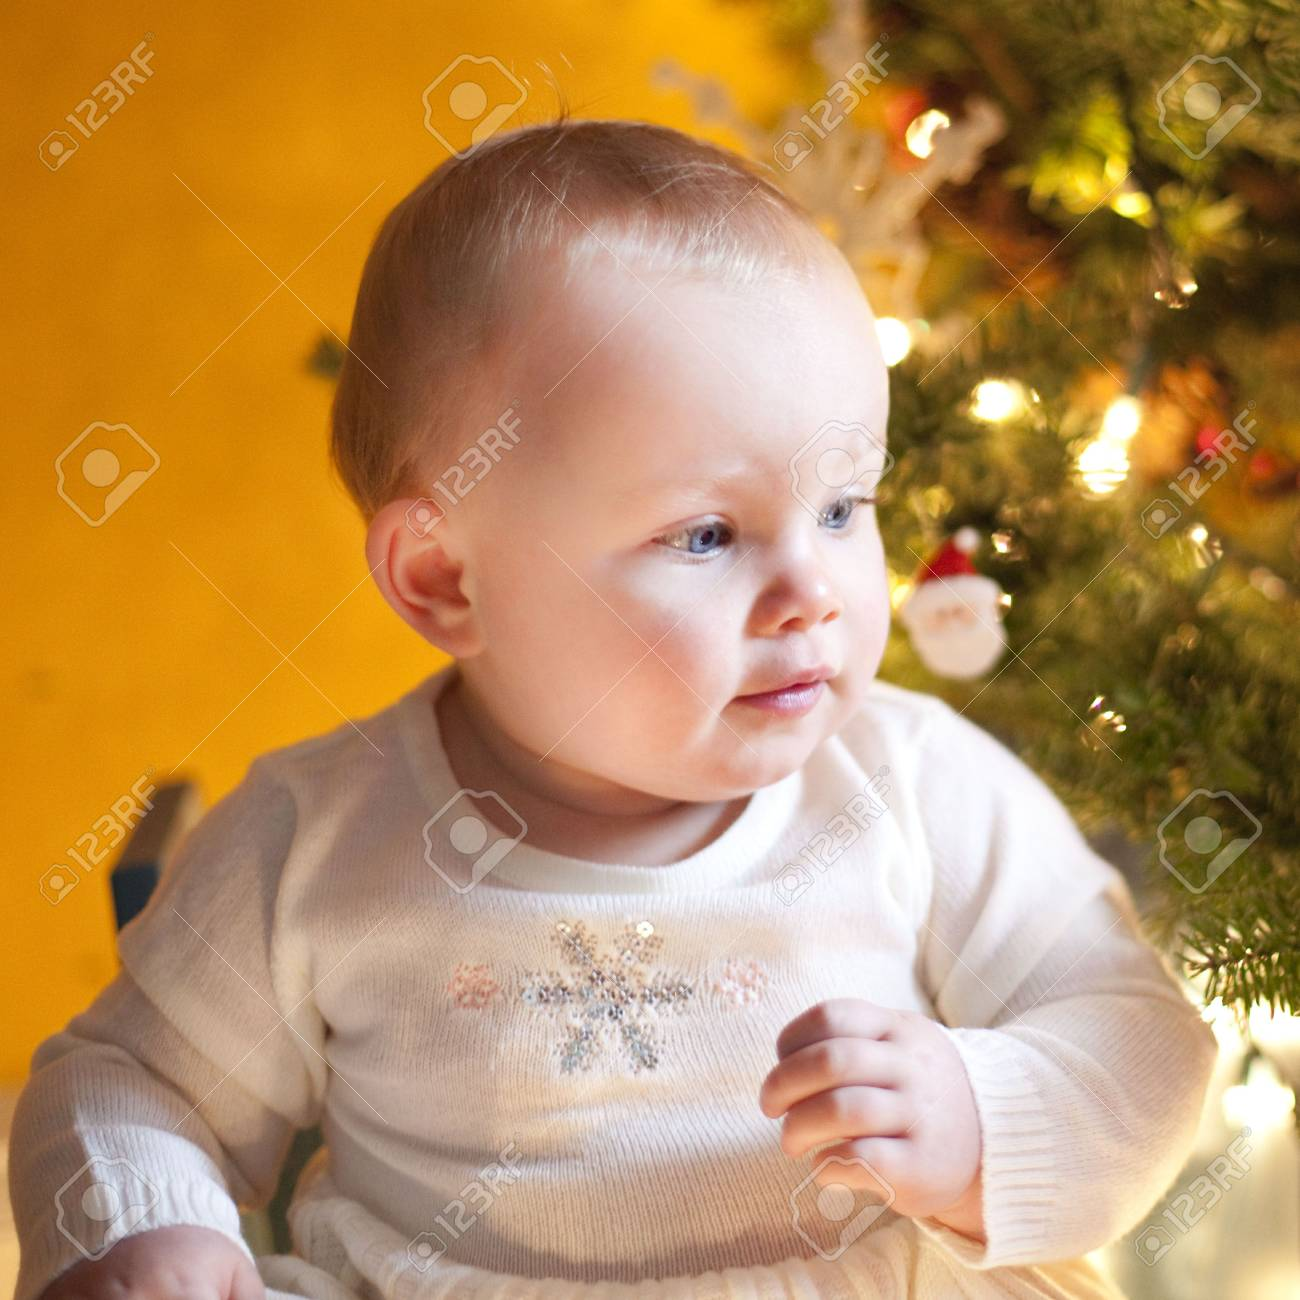 This is  a Baby Happy during Xmas Stock Photo - 6054910